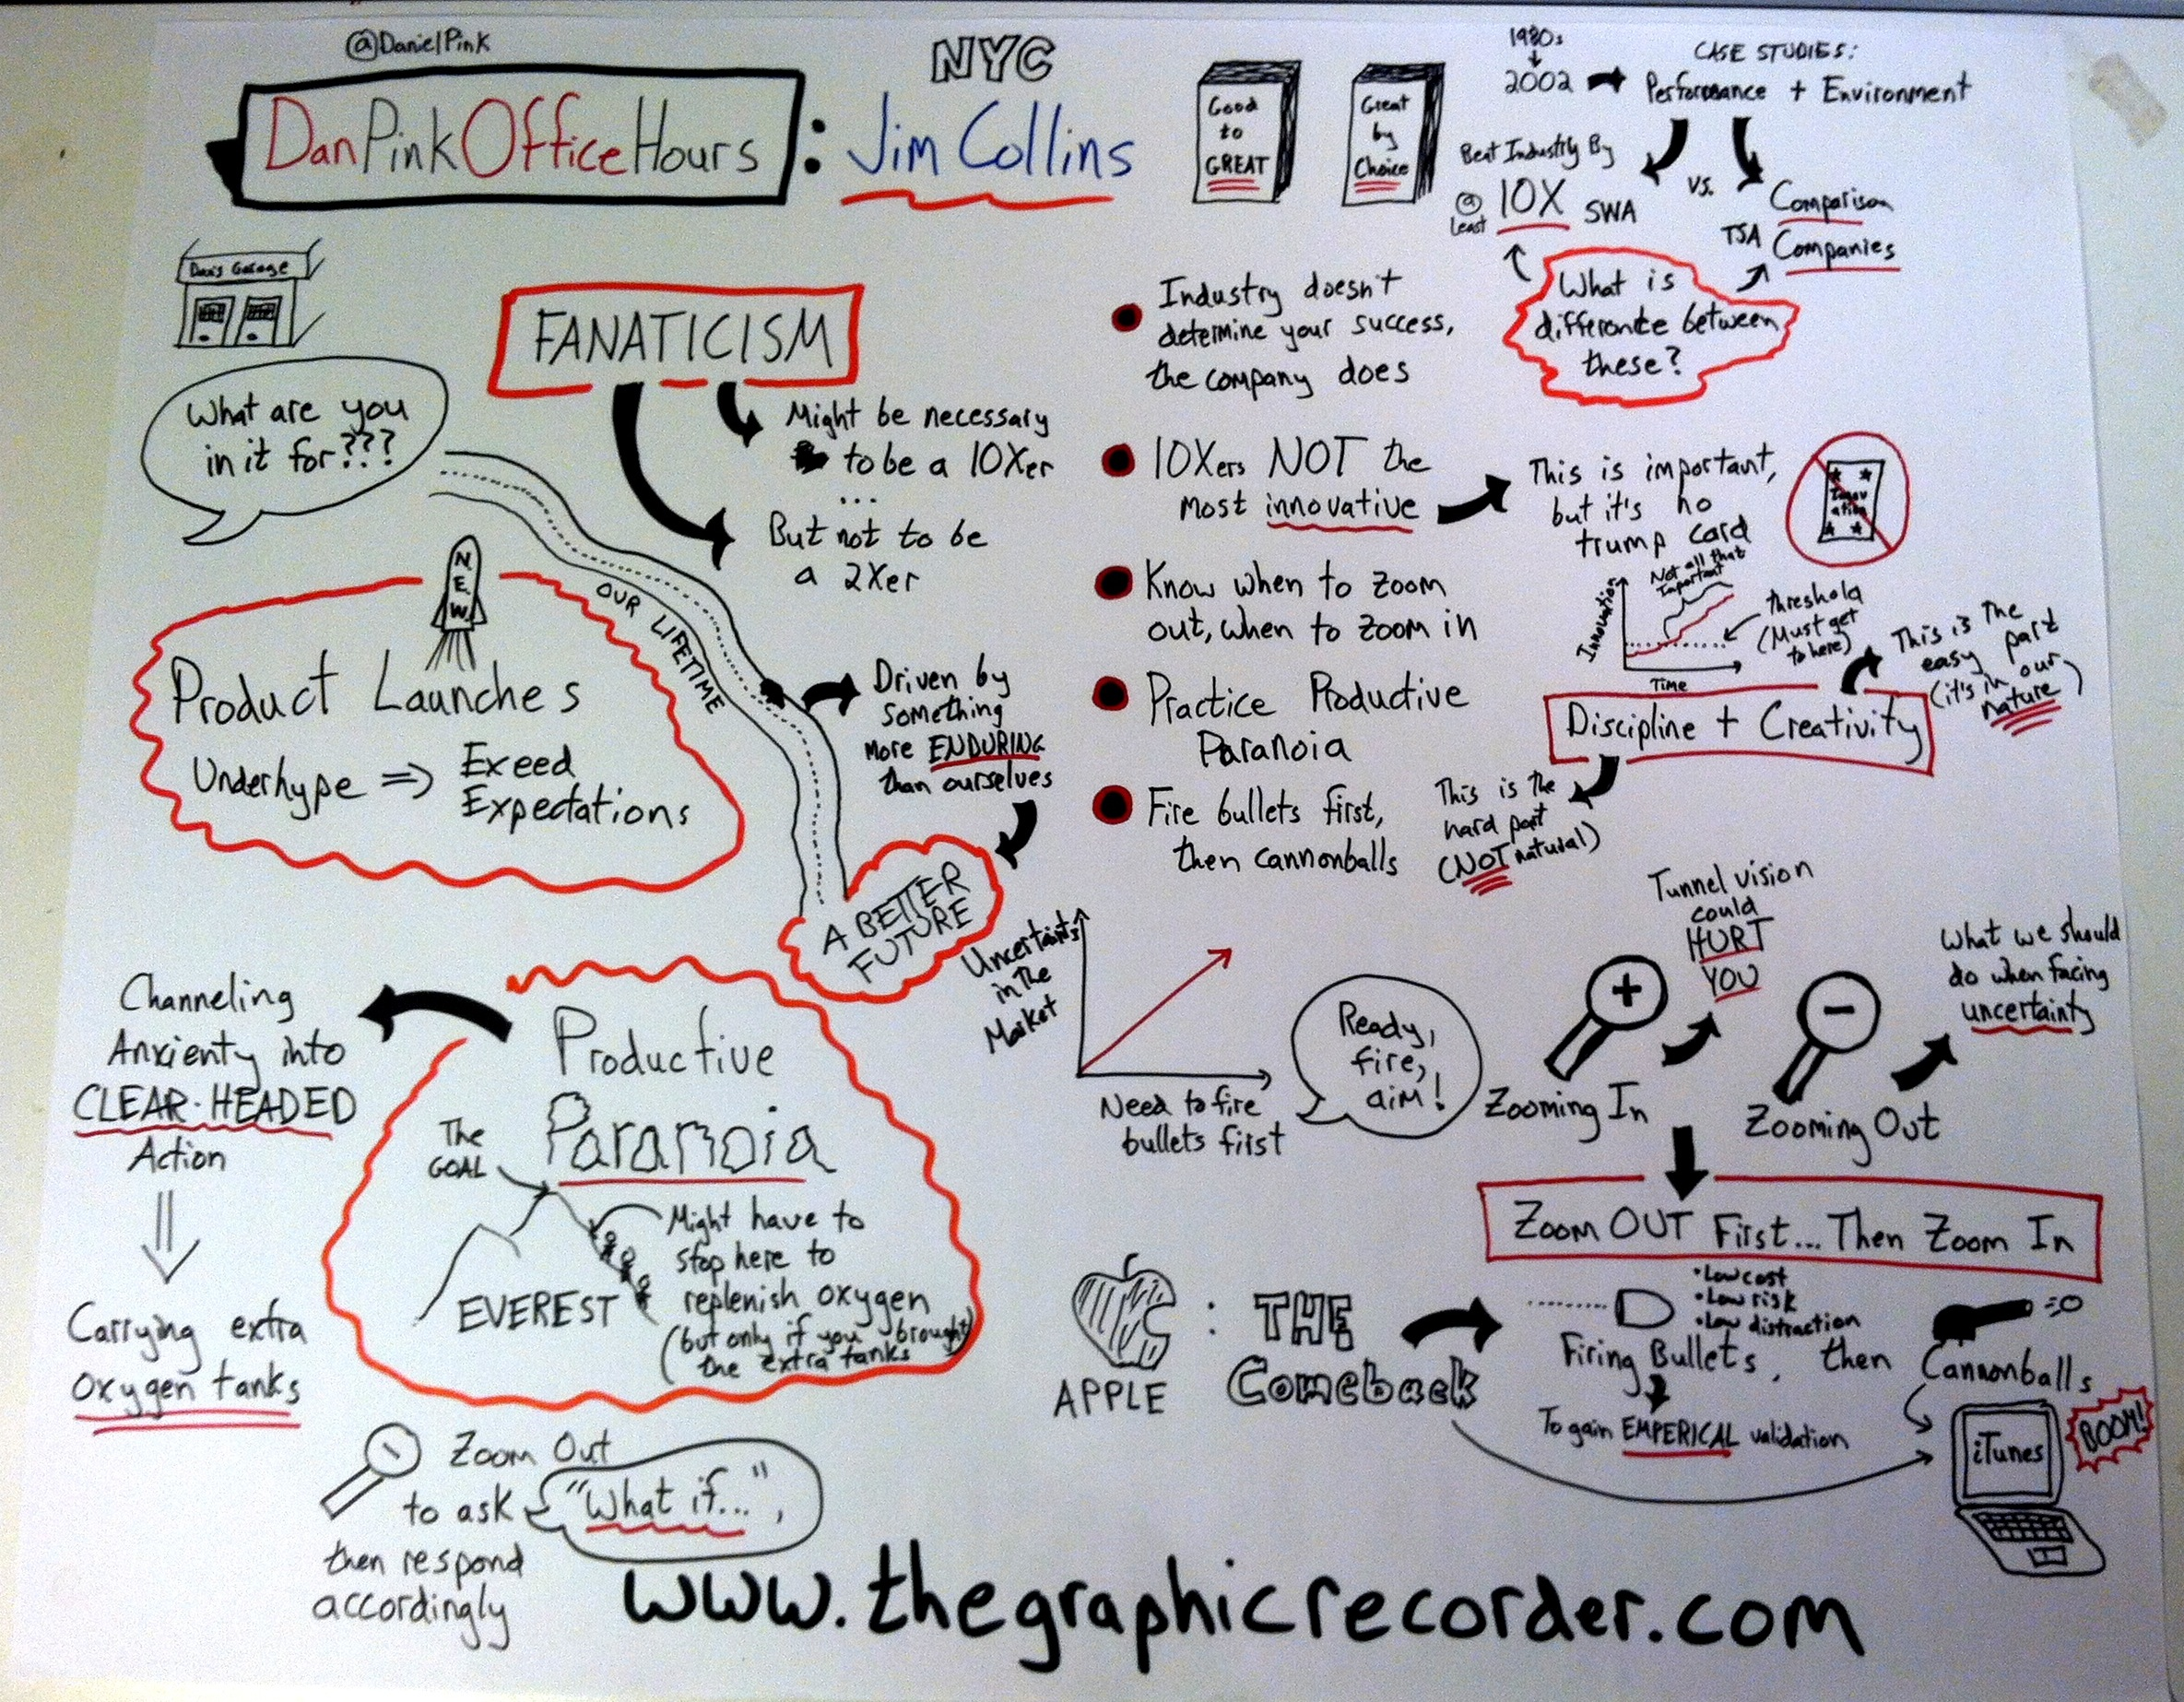 The graphic recorder sketch dan pink office hours with jim collins good to great by choice